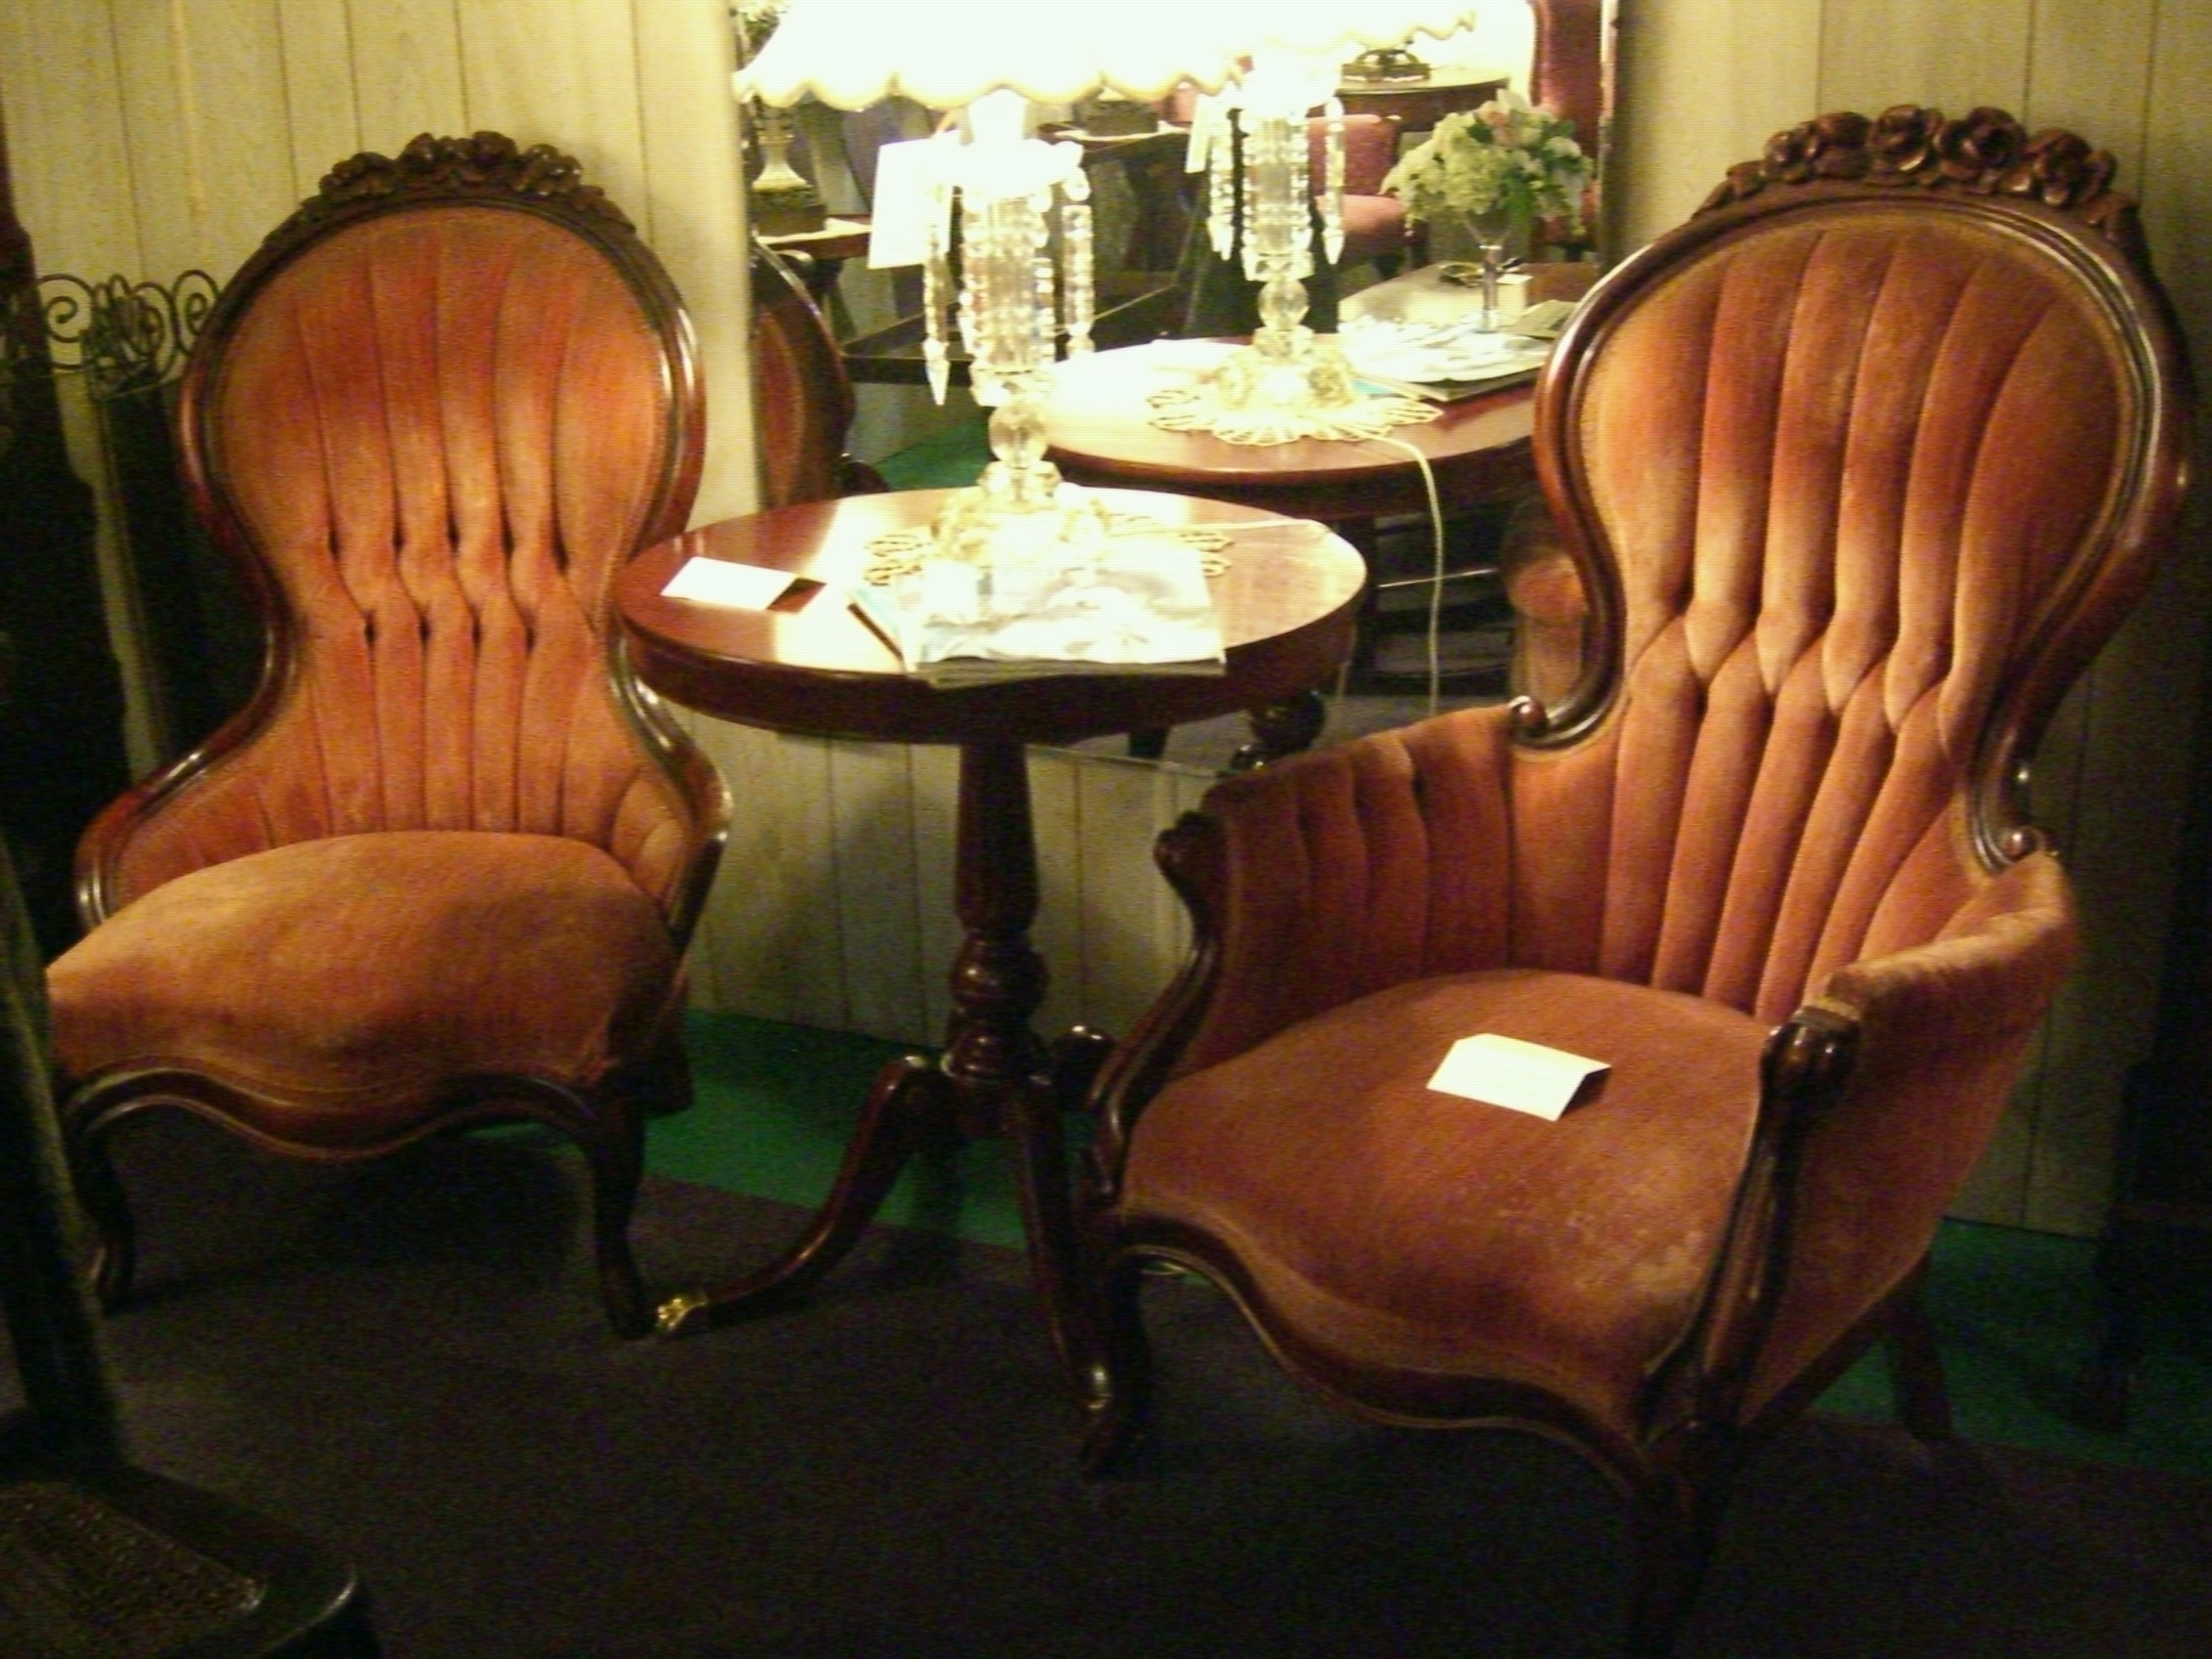 Advertisements & Two upholstered (c)1940 Victorian Parlor chairs | Antiques by Futura